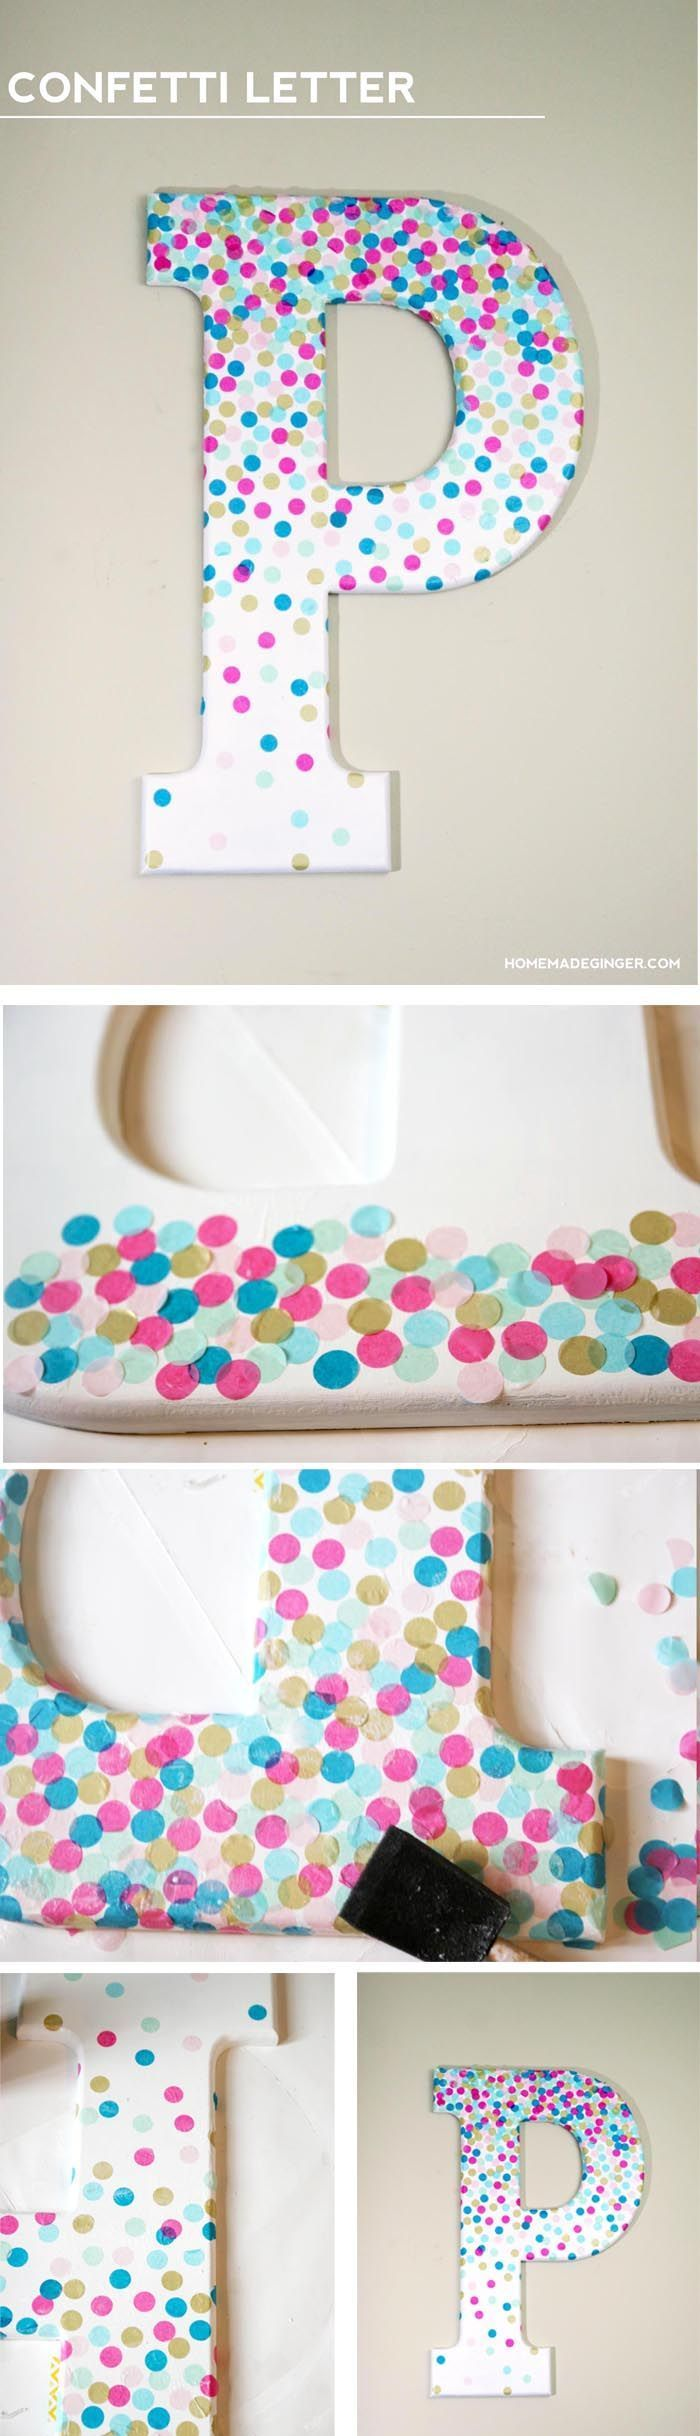 Polka dot wall mural with stencil super easy girls riom diy wall art confetti letter amipublicfo Image collections